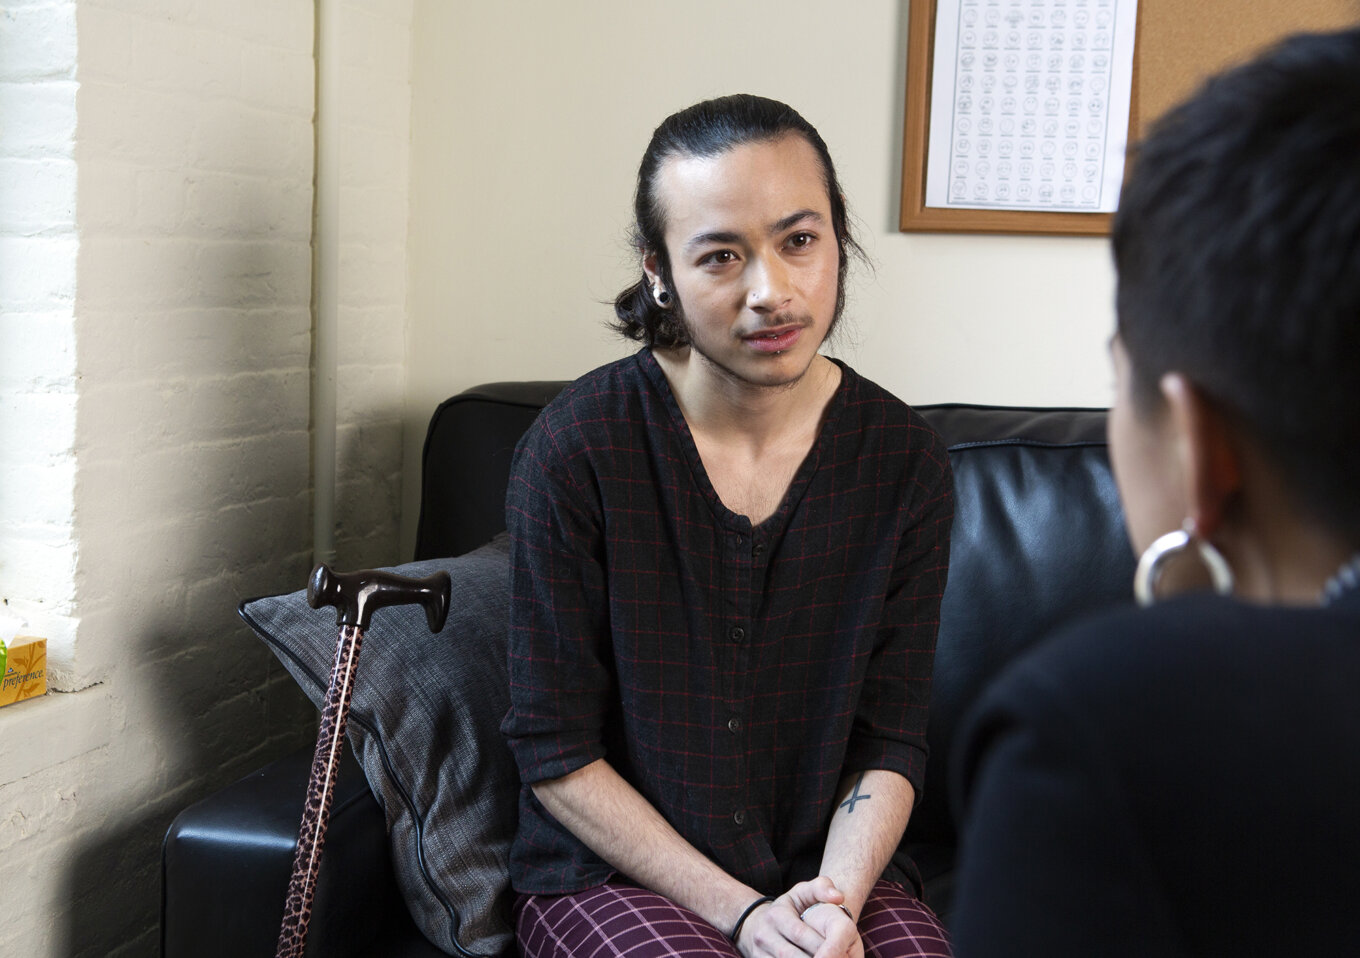 Stock photograph of a genderqueer person sitting on a therapist's couch, listening.